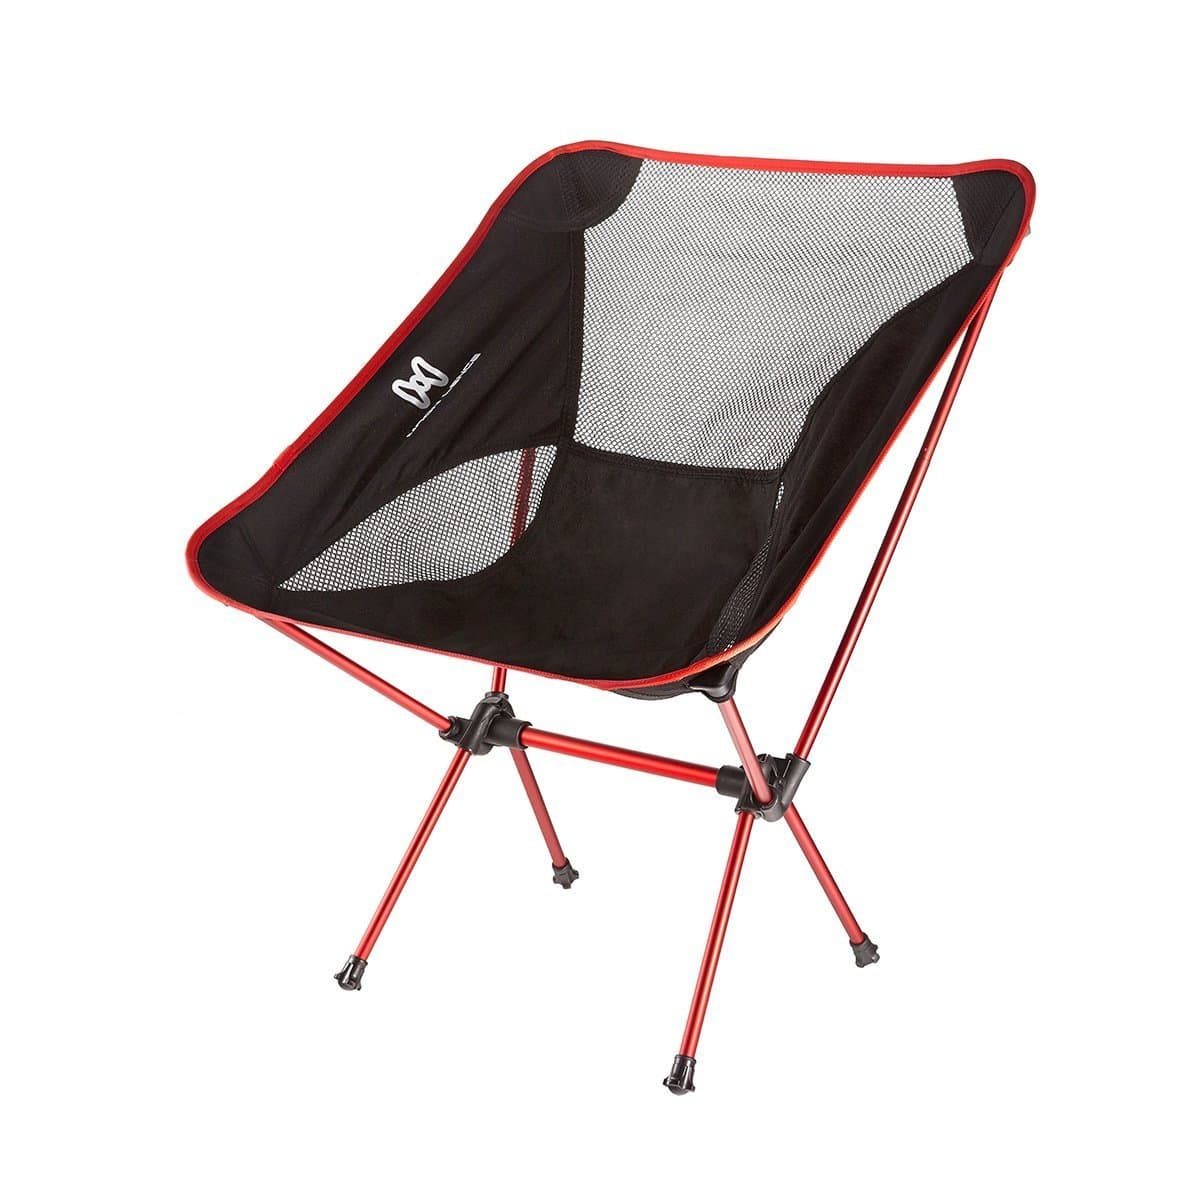 Moon Lence Ultralight Portable Folding Camping Chair With Carry Bag For  $23.79 + FSSS   Slickdeals.net